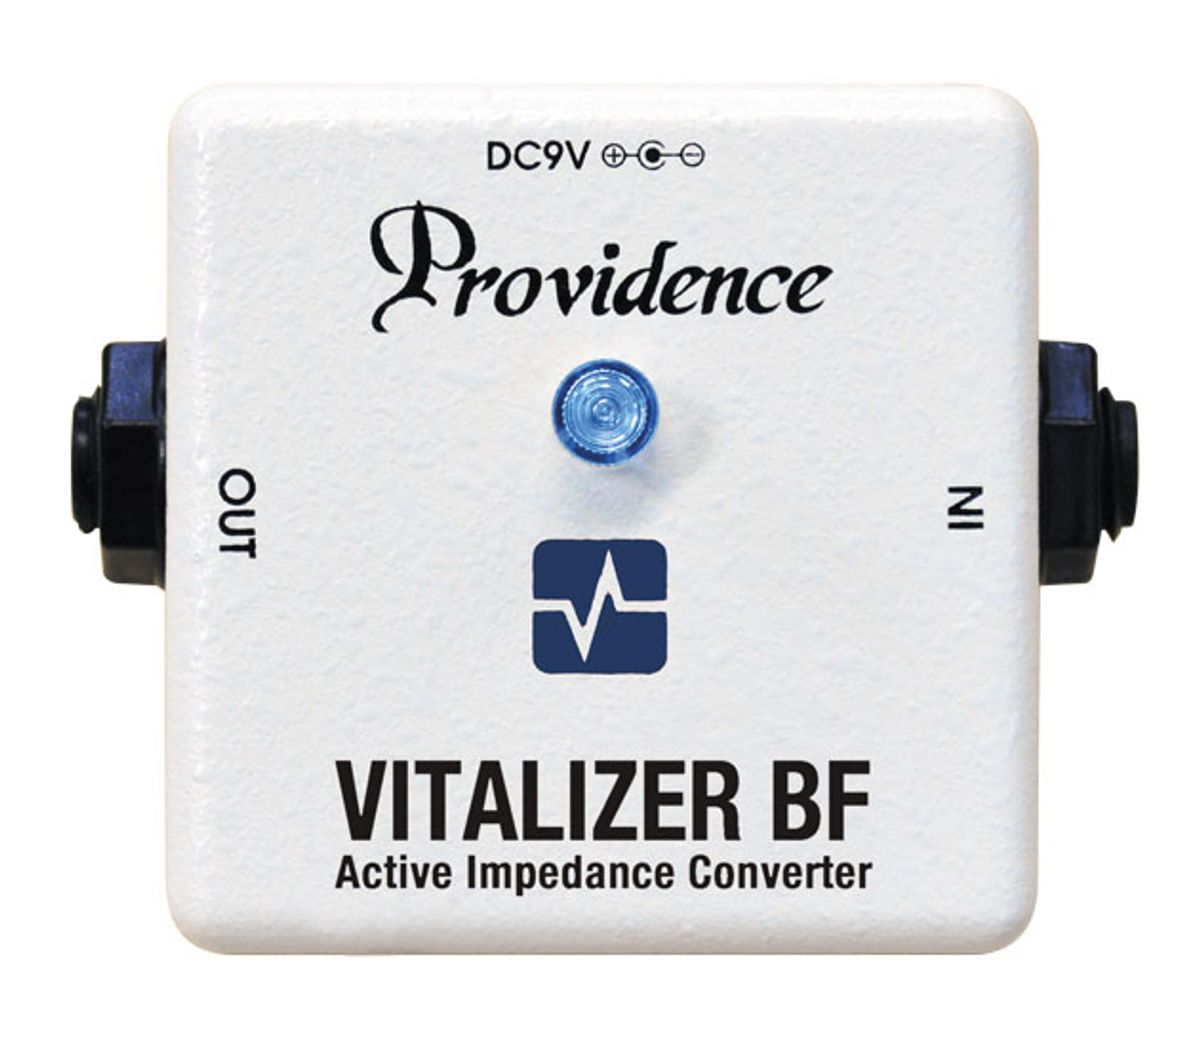 Providence Introduces the Vitalizer BF VZF-1